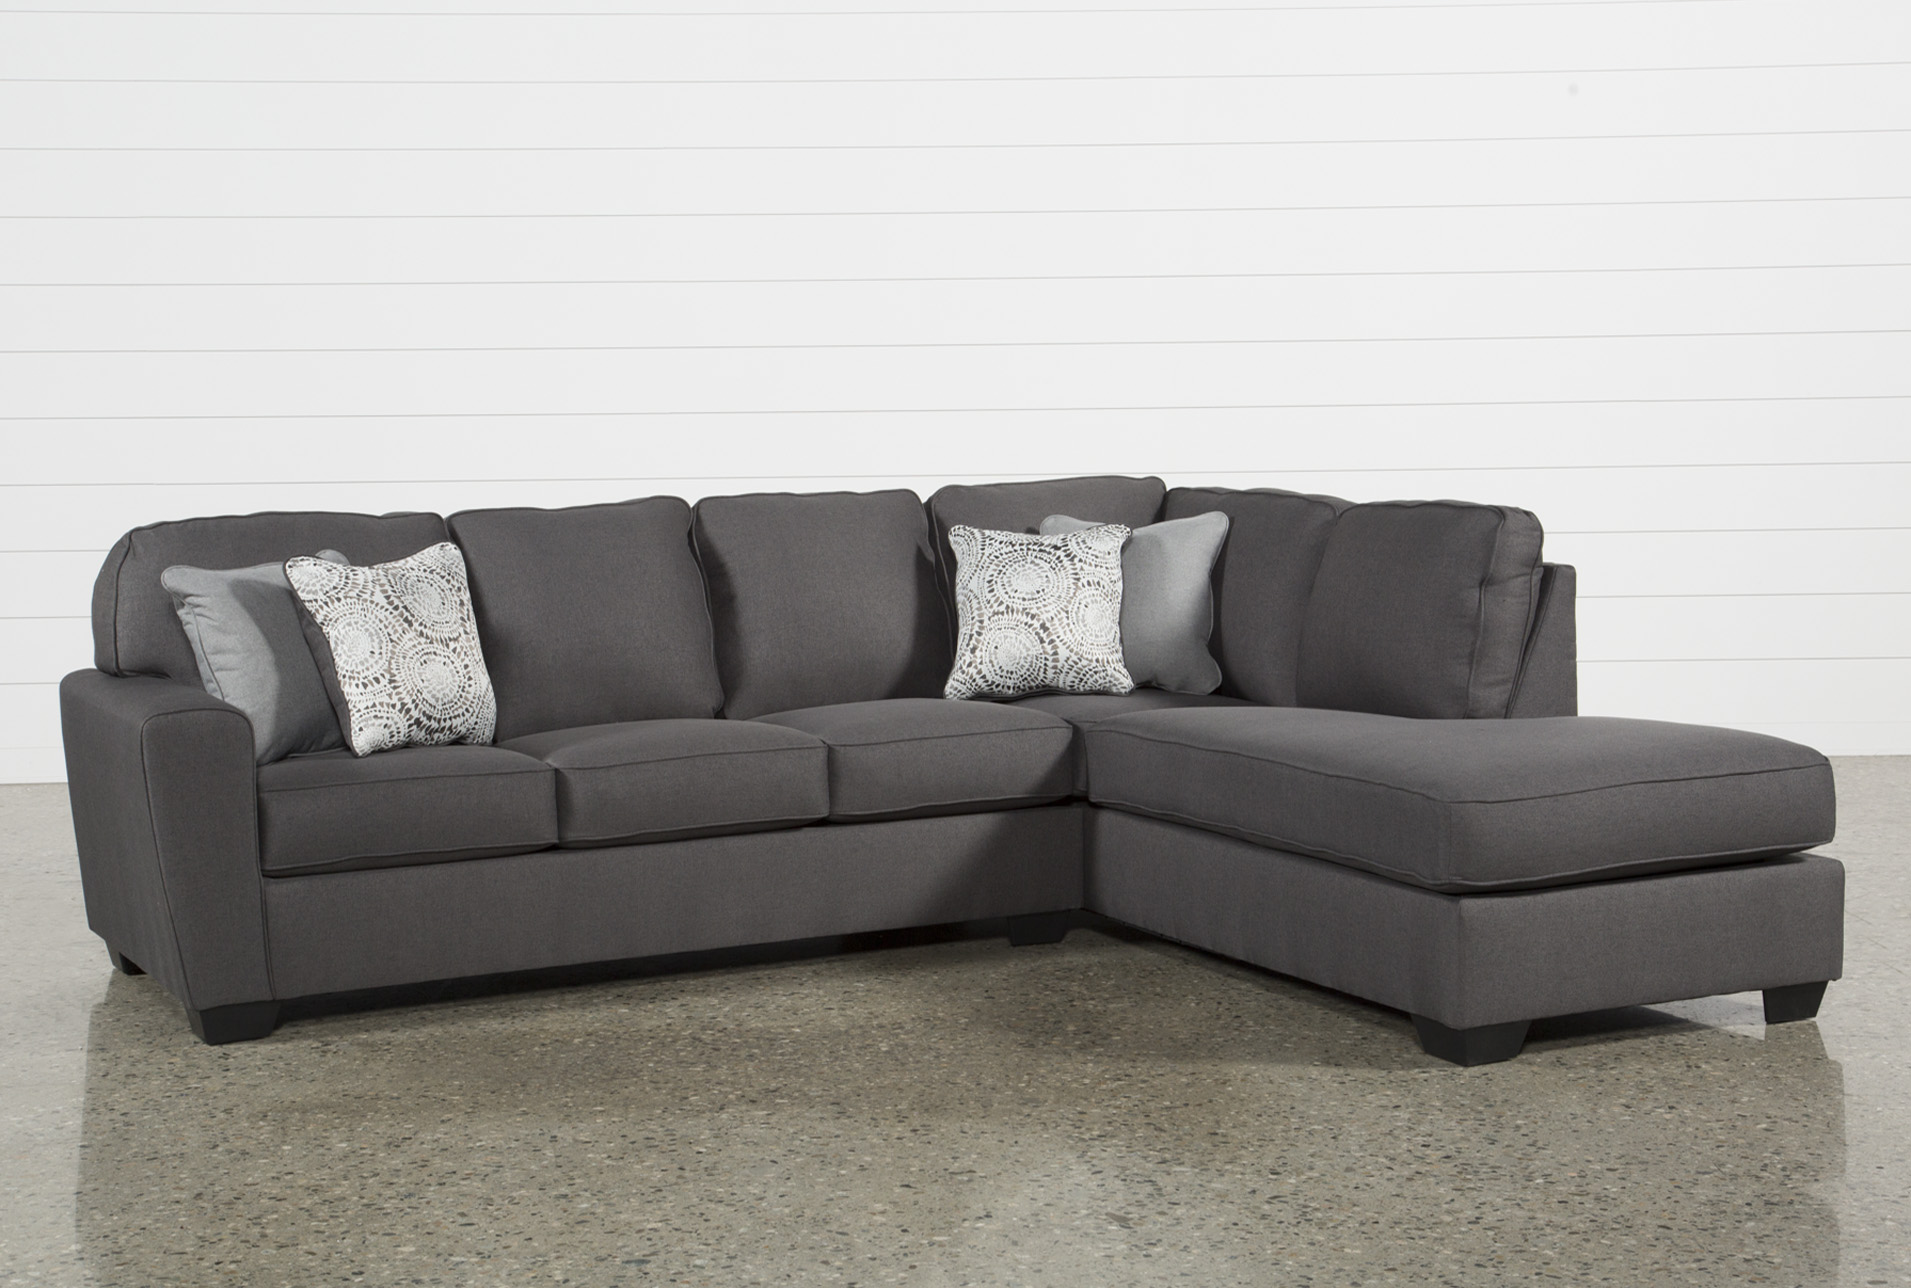 Mcdade Graphite 2 Piece Sectional W/Raf Chaise (Qty: 1) Has Been  Successfully Added To Your Cart.